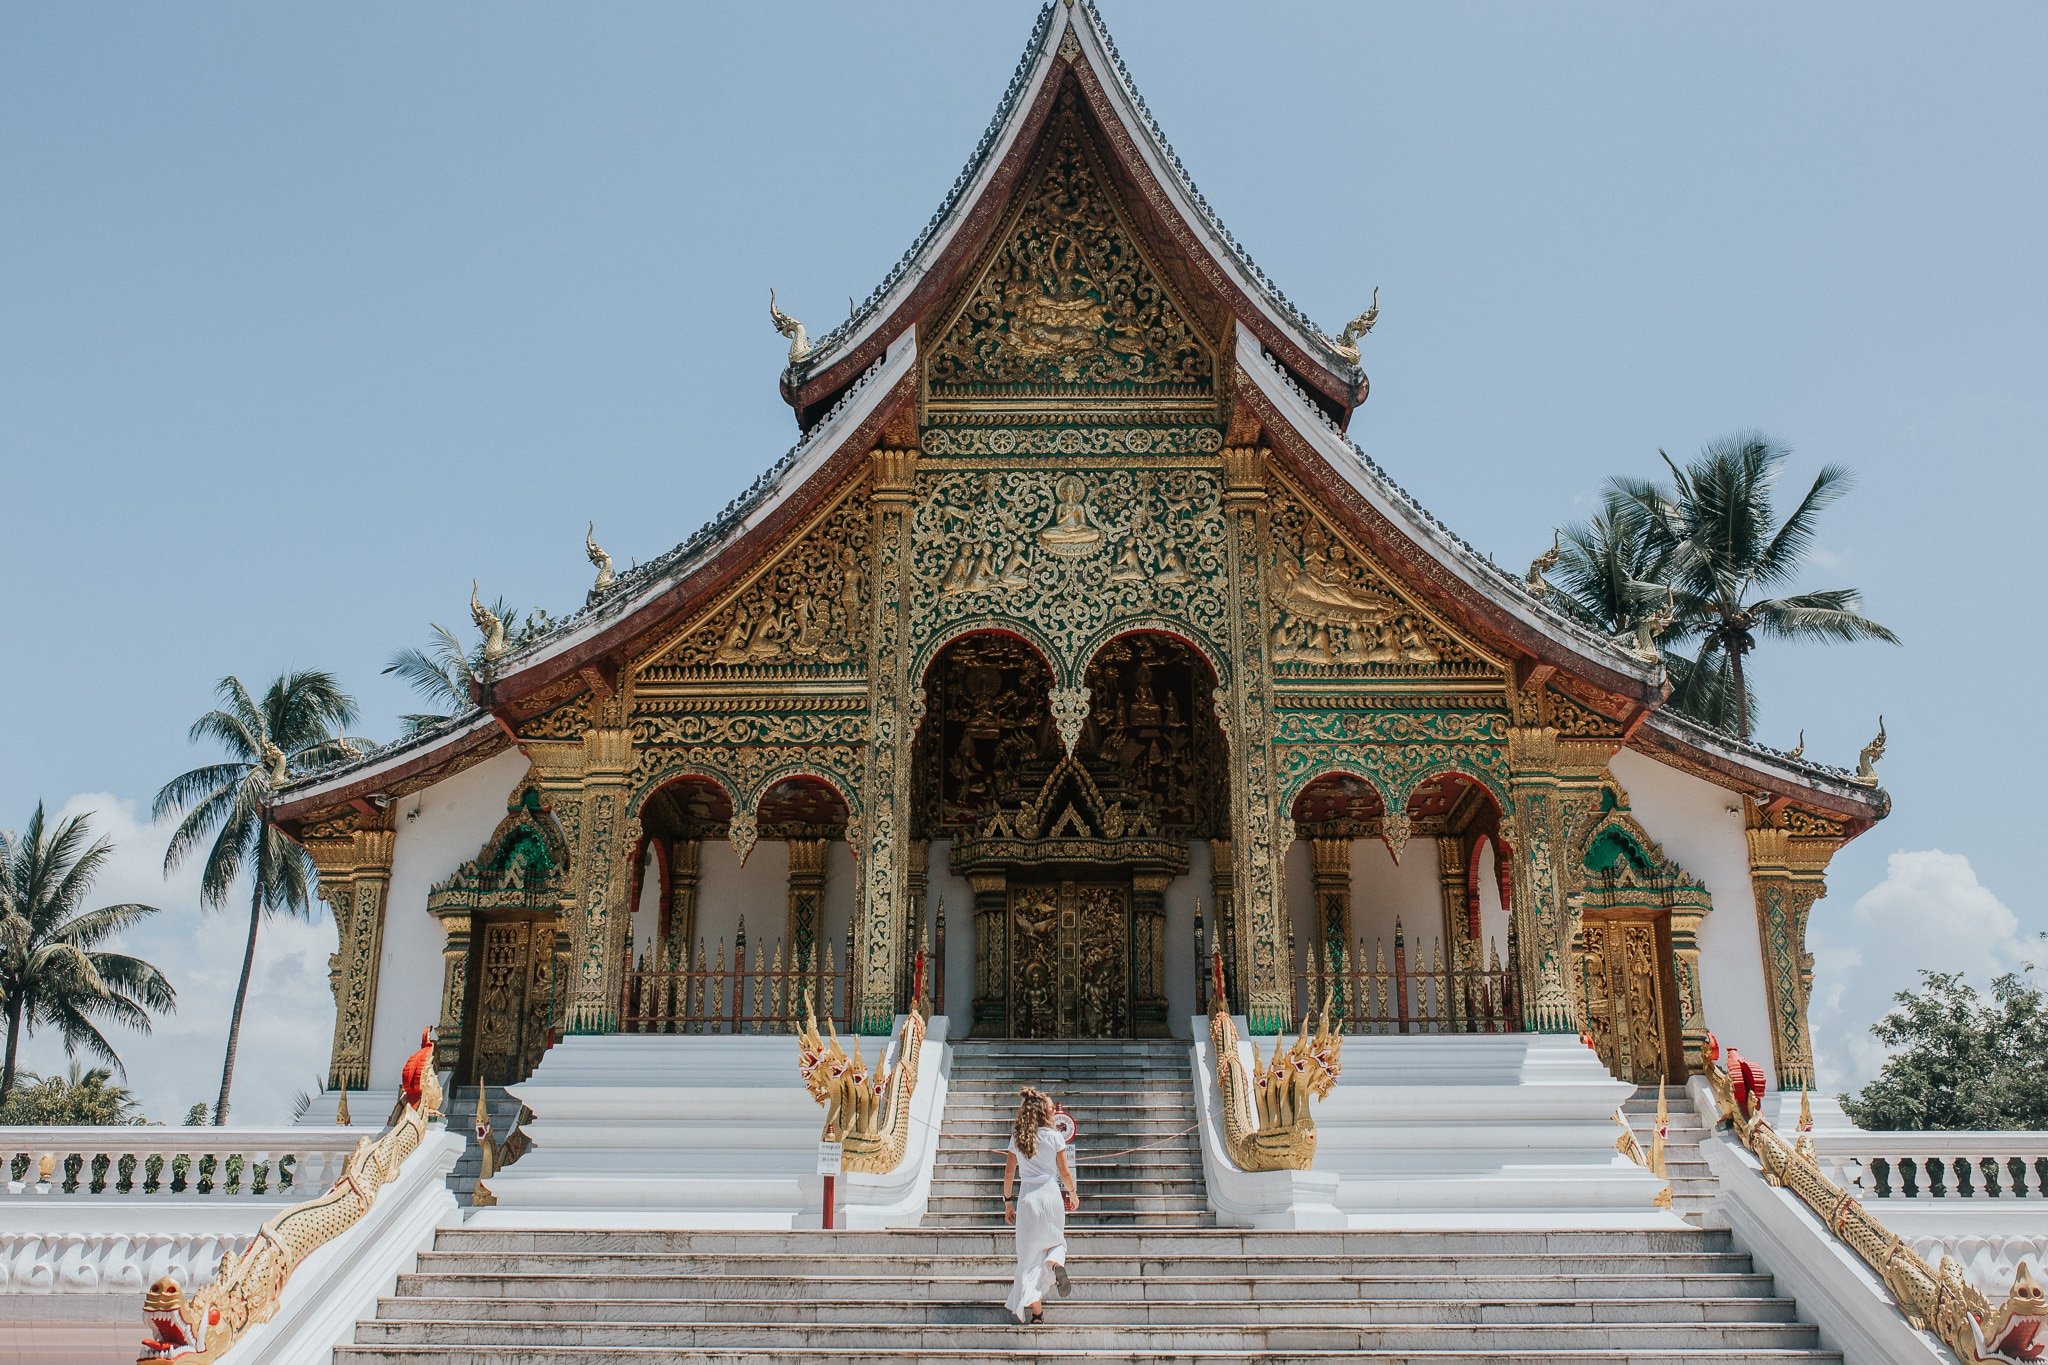 One week in Laos - Luang Prabang National Museum - The Haw Pha Bang